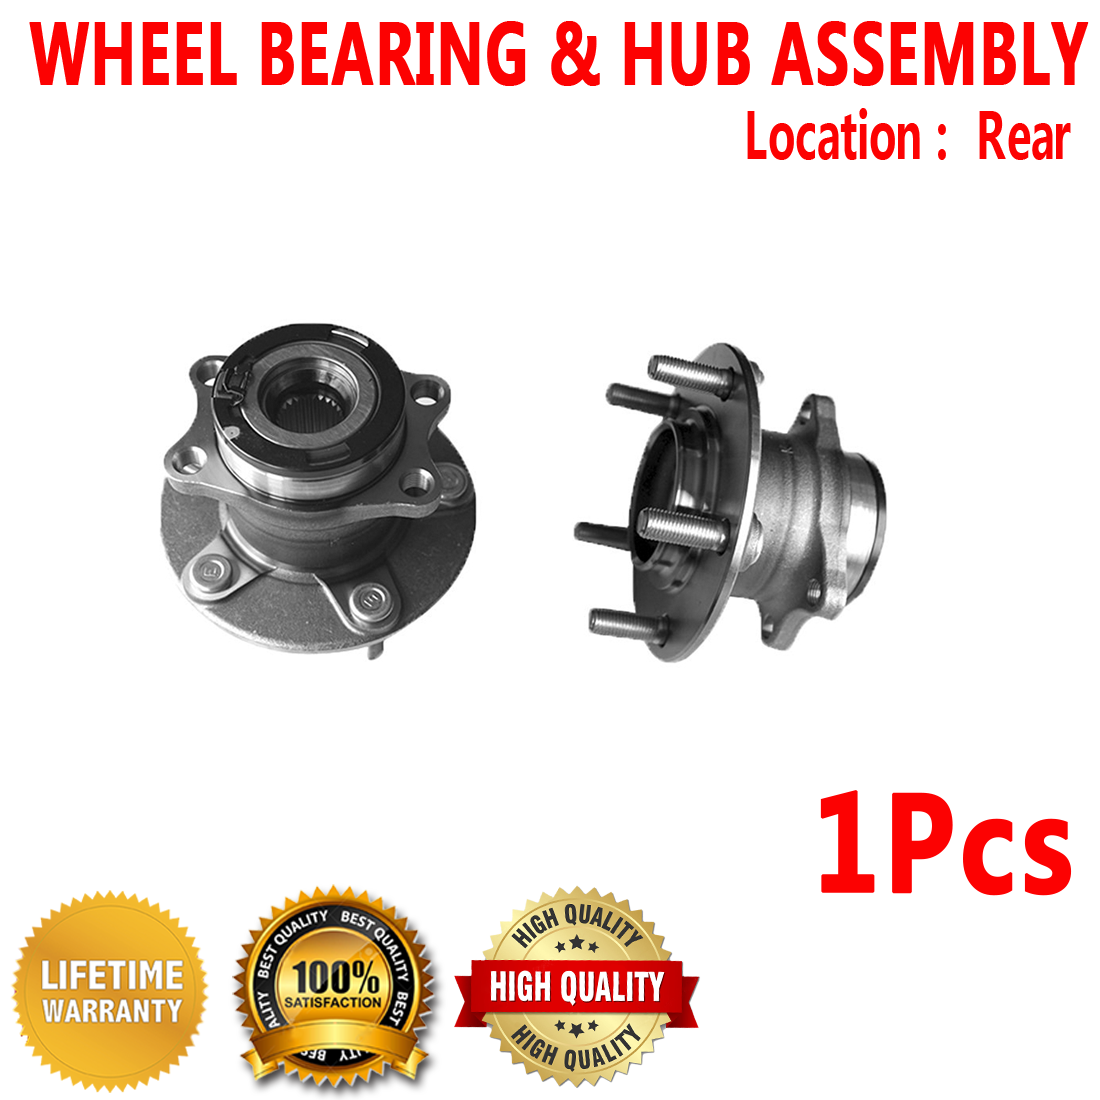 2007 fits Dodge Caliber Front Wheel Bearing One Bearing Included with Two Years Warranty Note: AWD, FWD